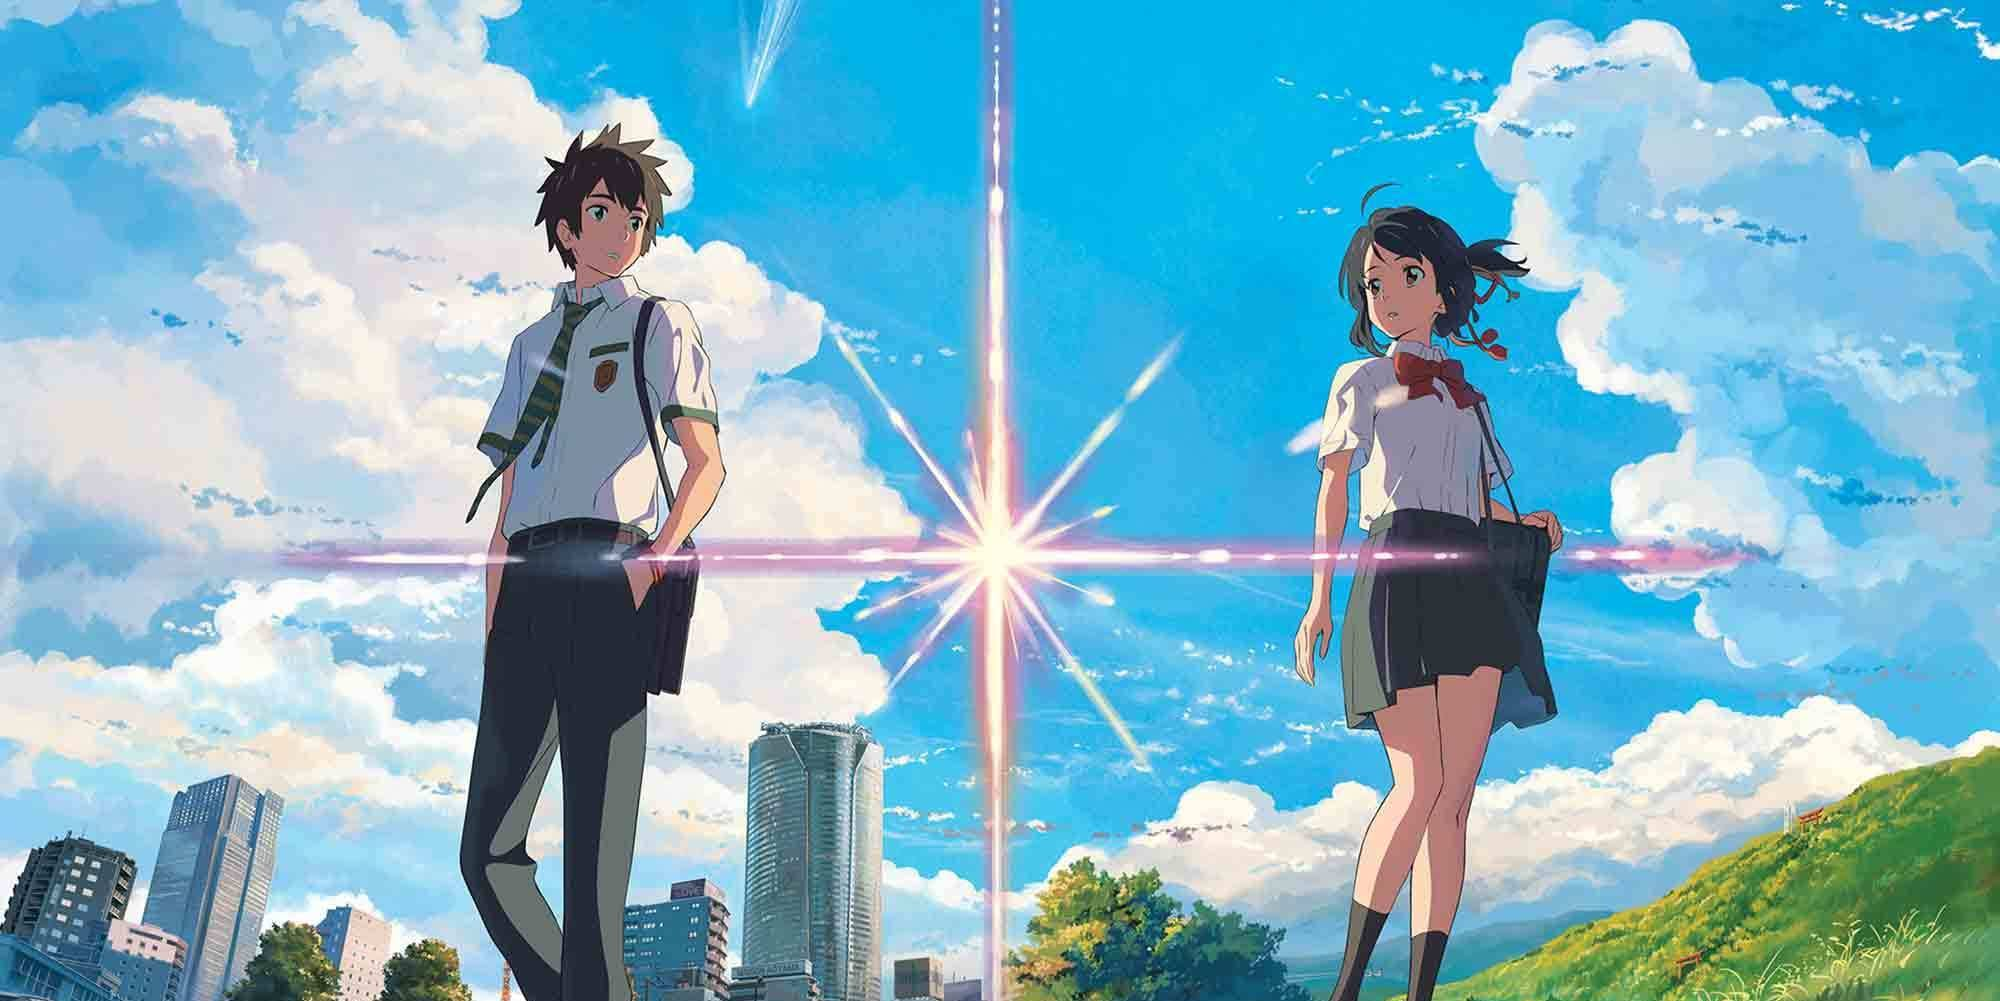 The Biggest Anime Film of All Time Just Arrived in the U.S.